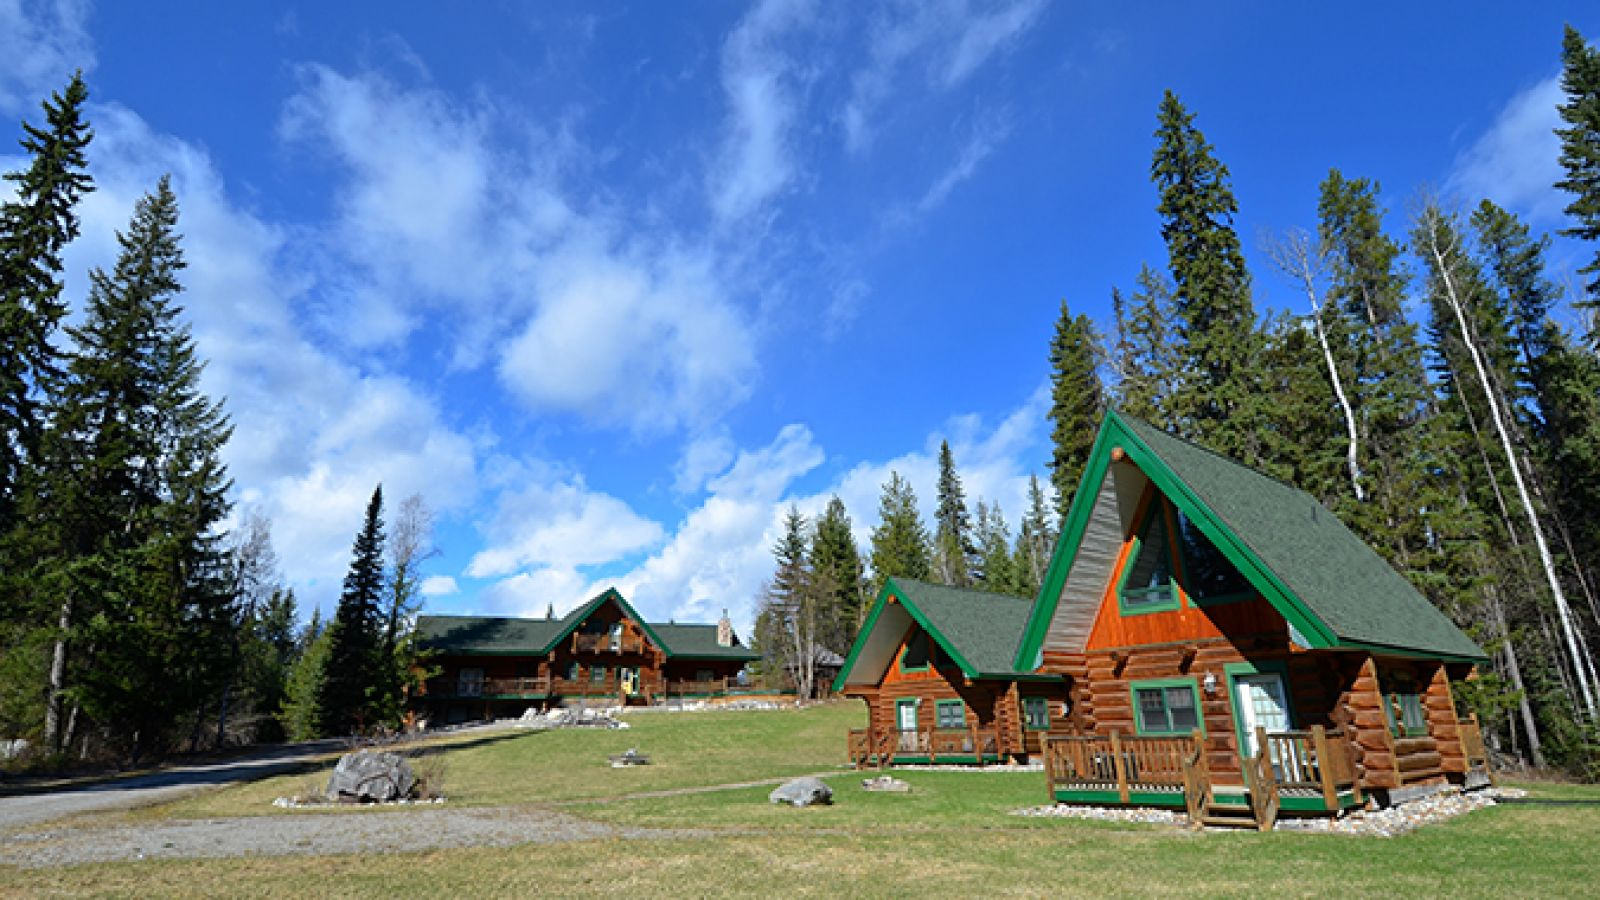 Lodge rooms and cabin overnighting options.